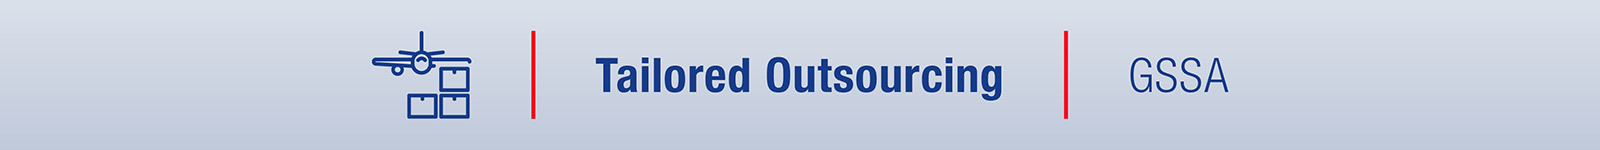 Fly Us Tailored Outsourcing GSSA1